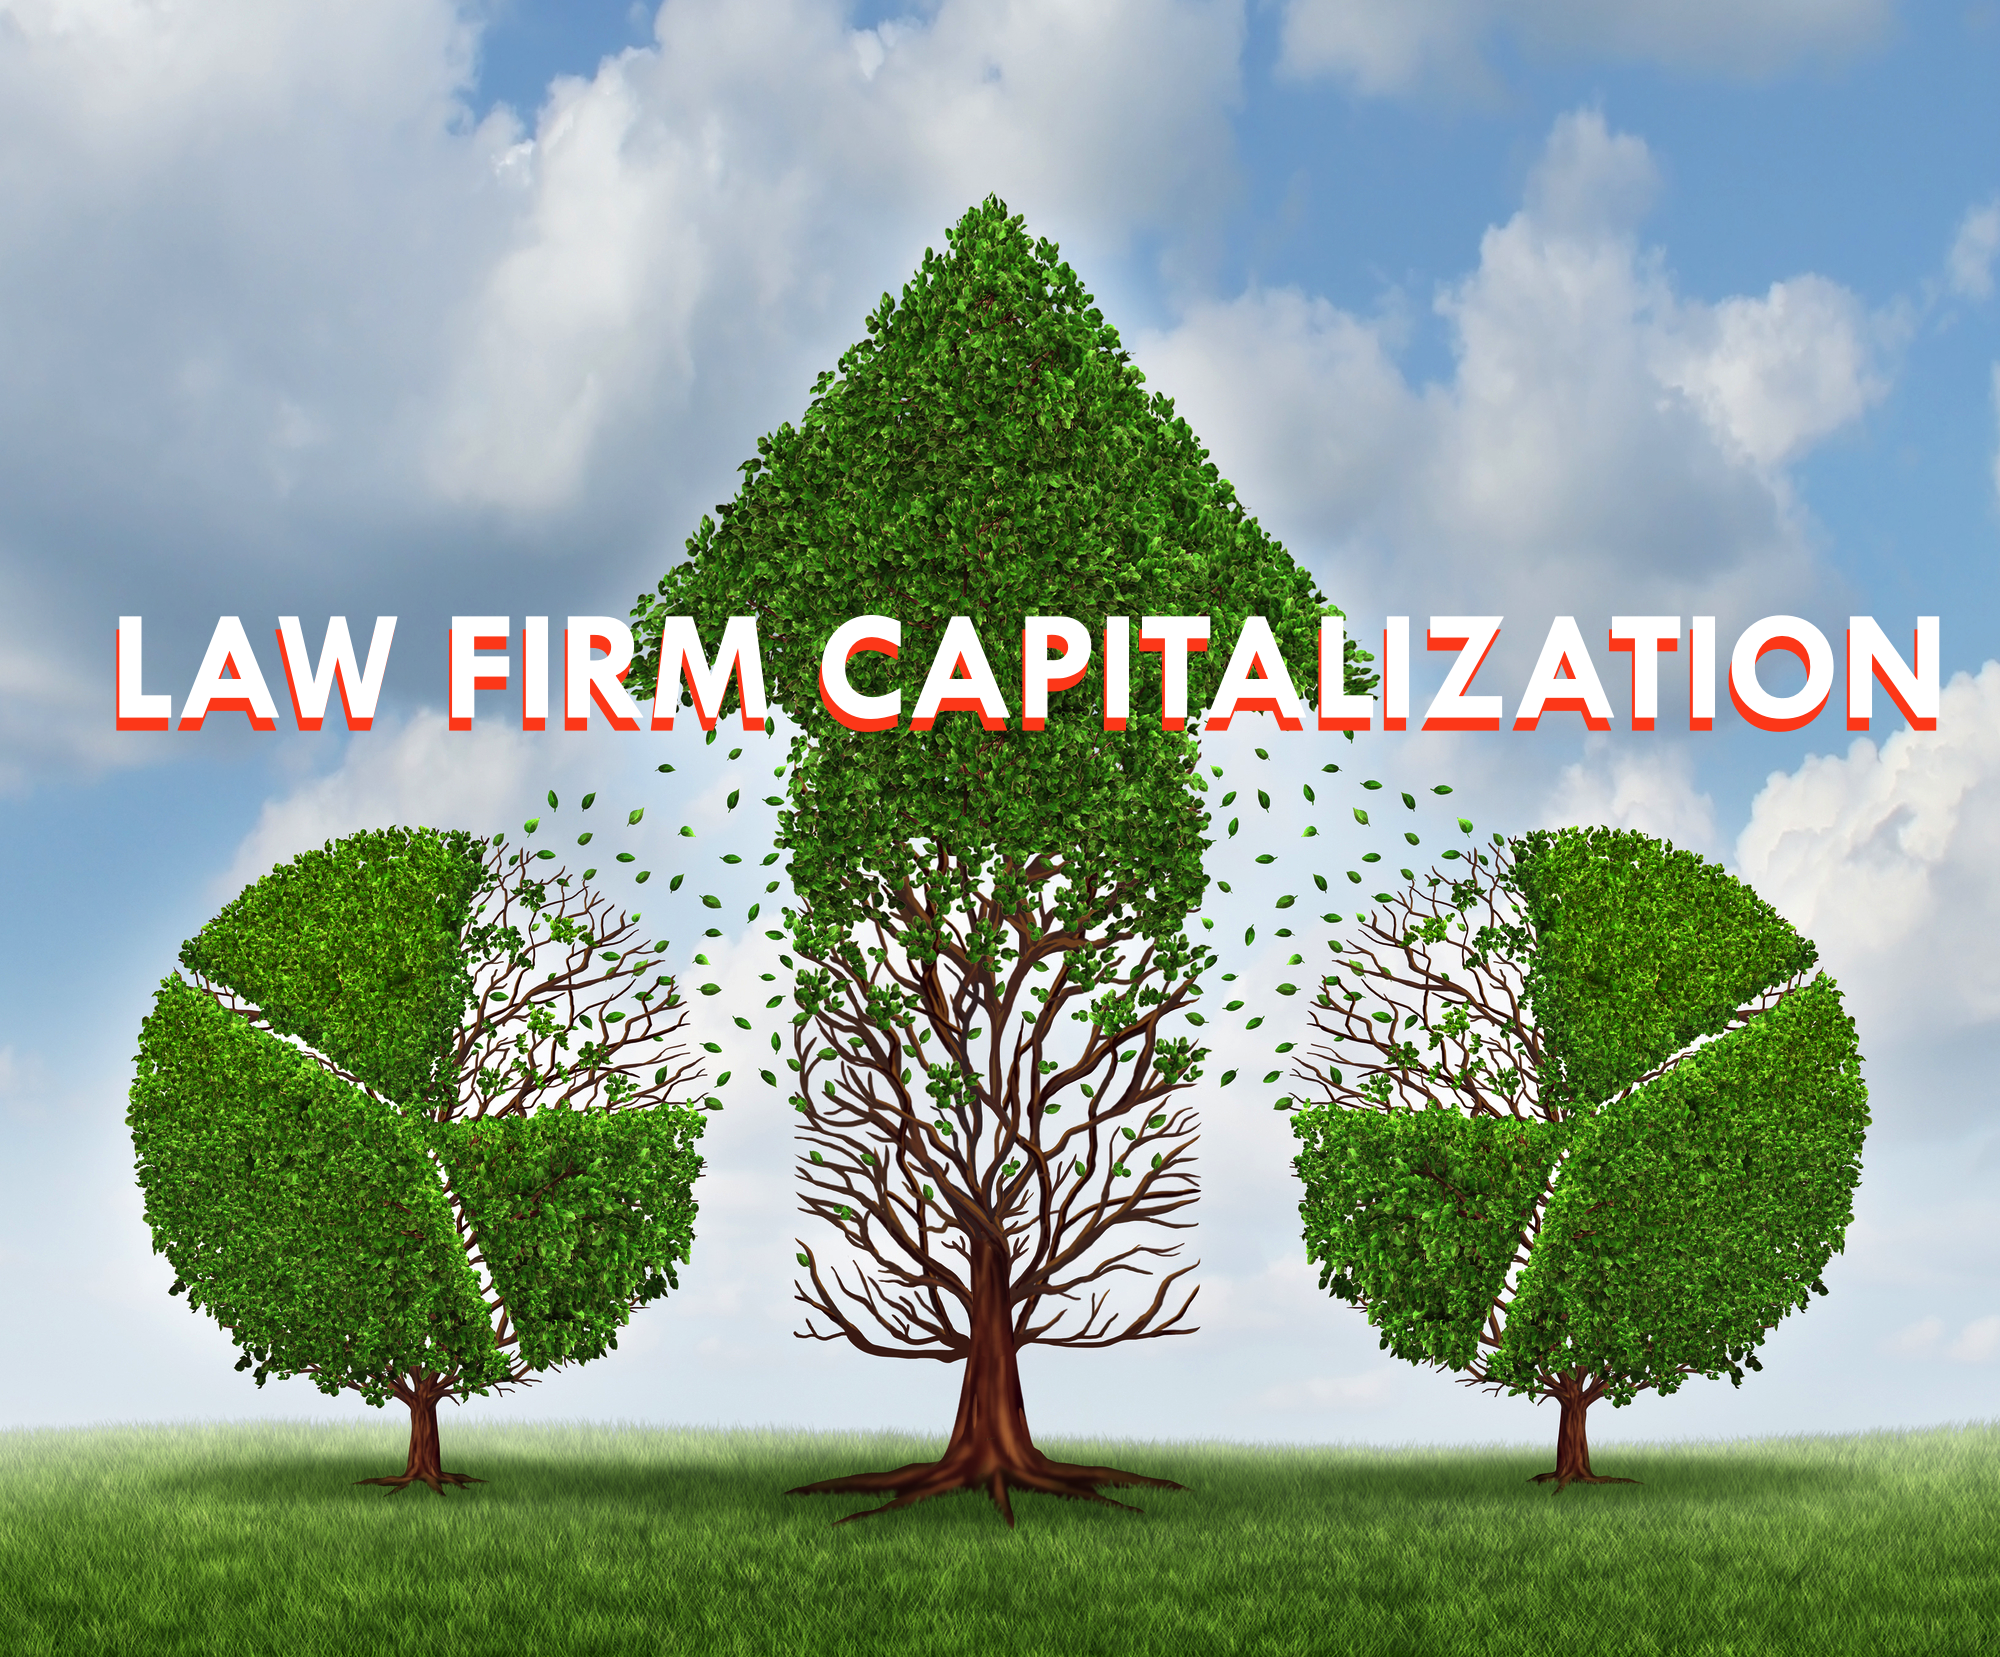 Law Firm Capitalization